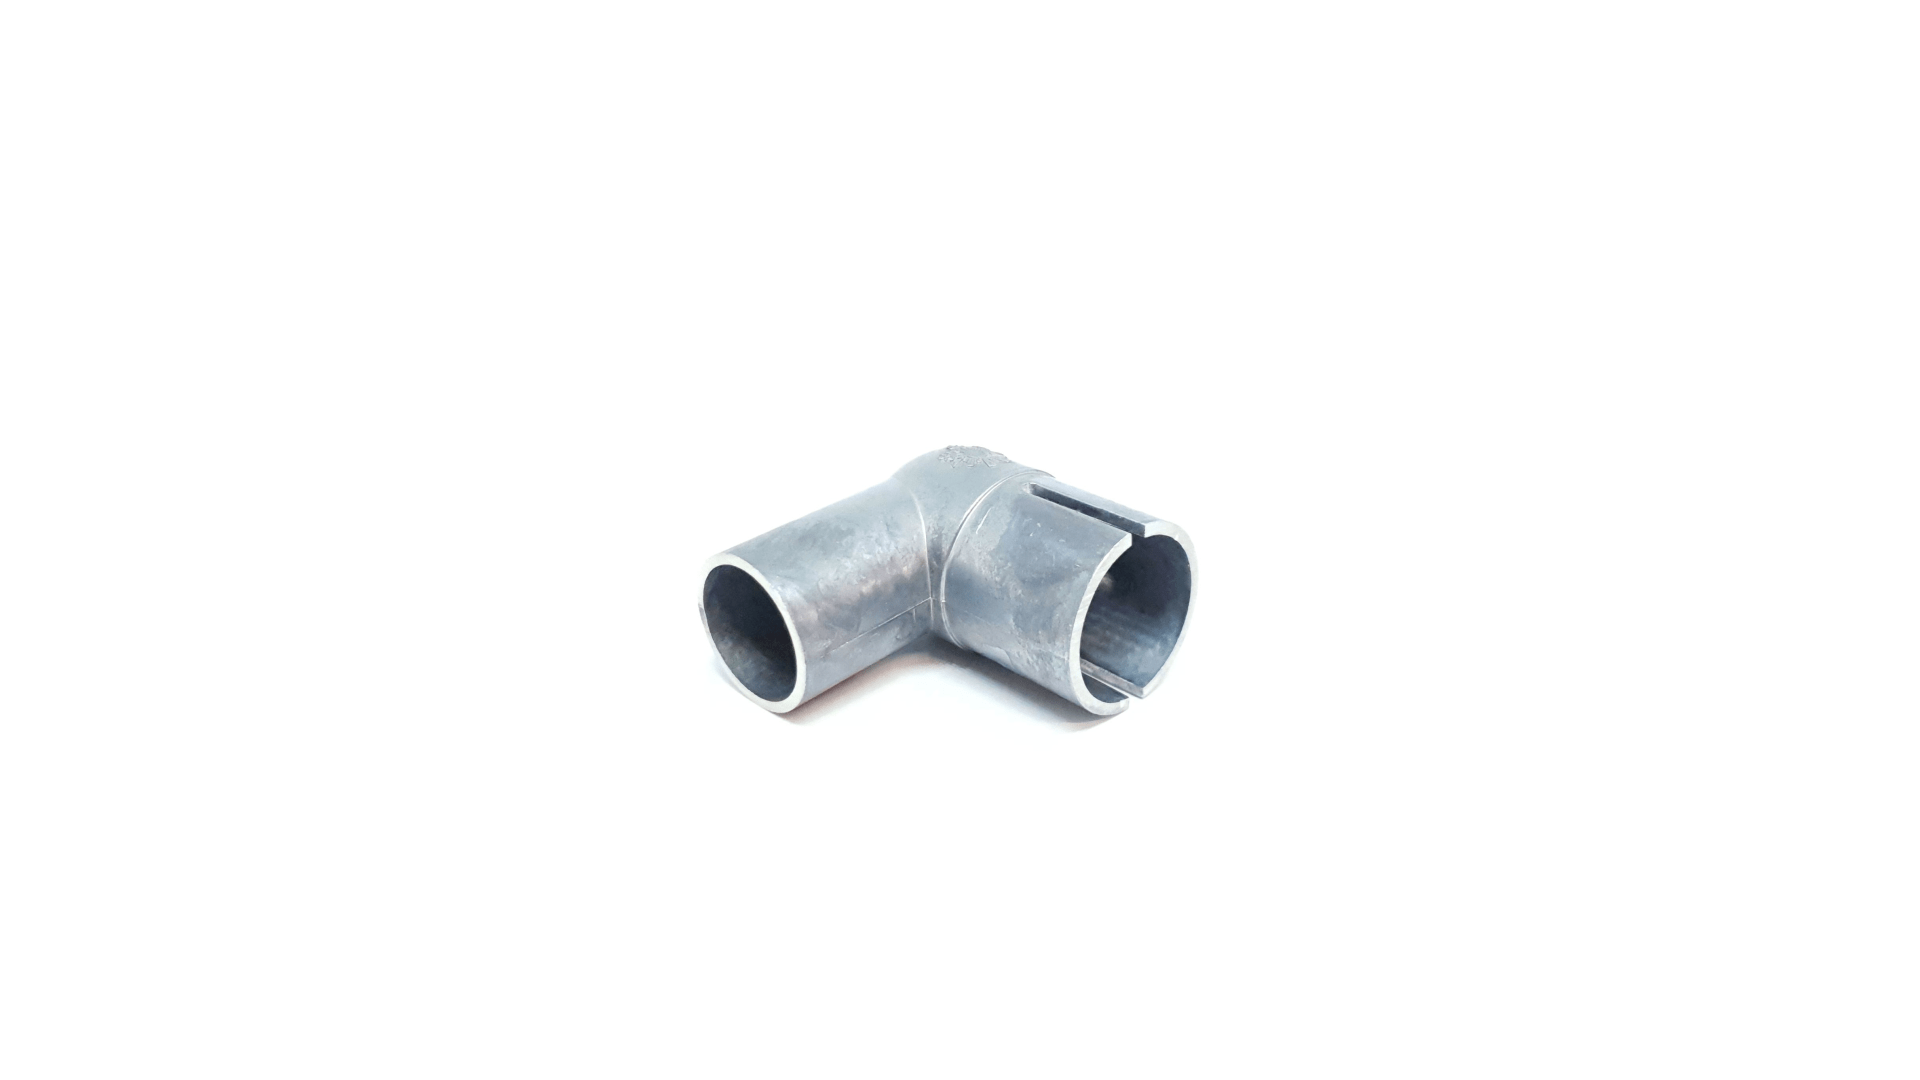 l shaped exhaust pipe adapter